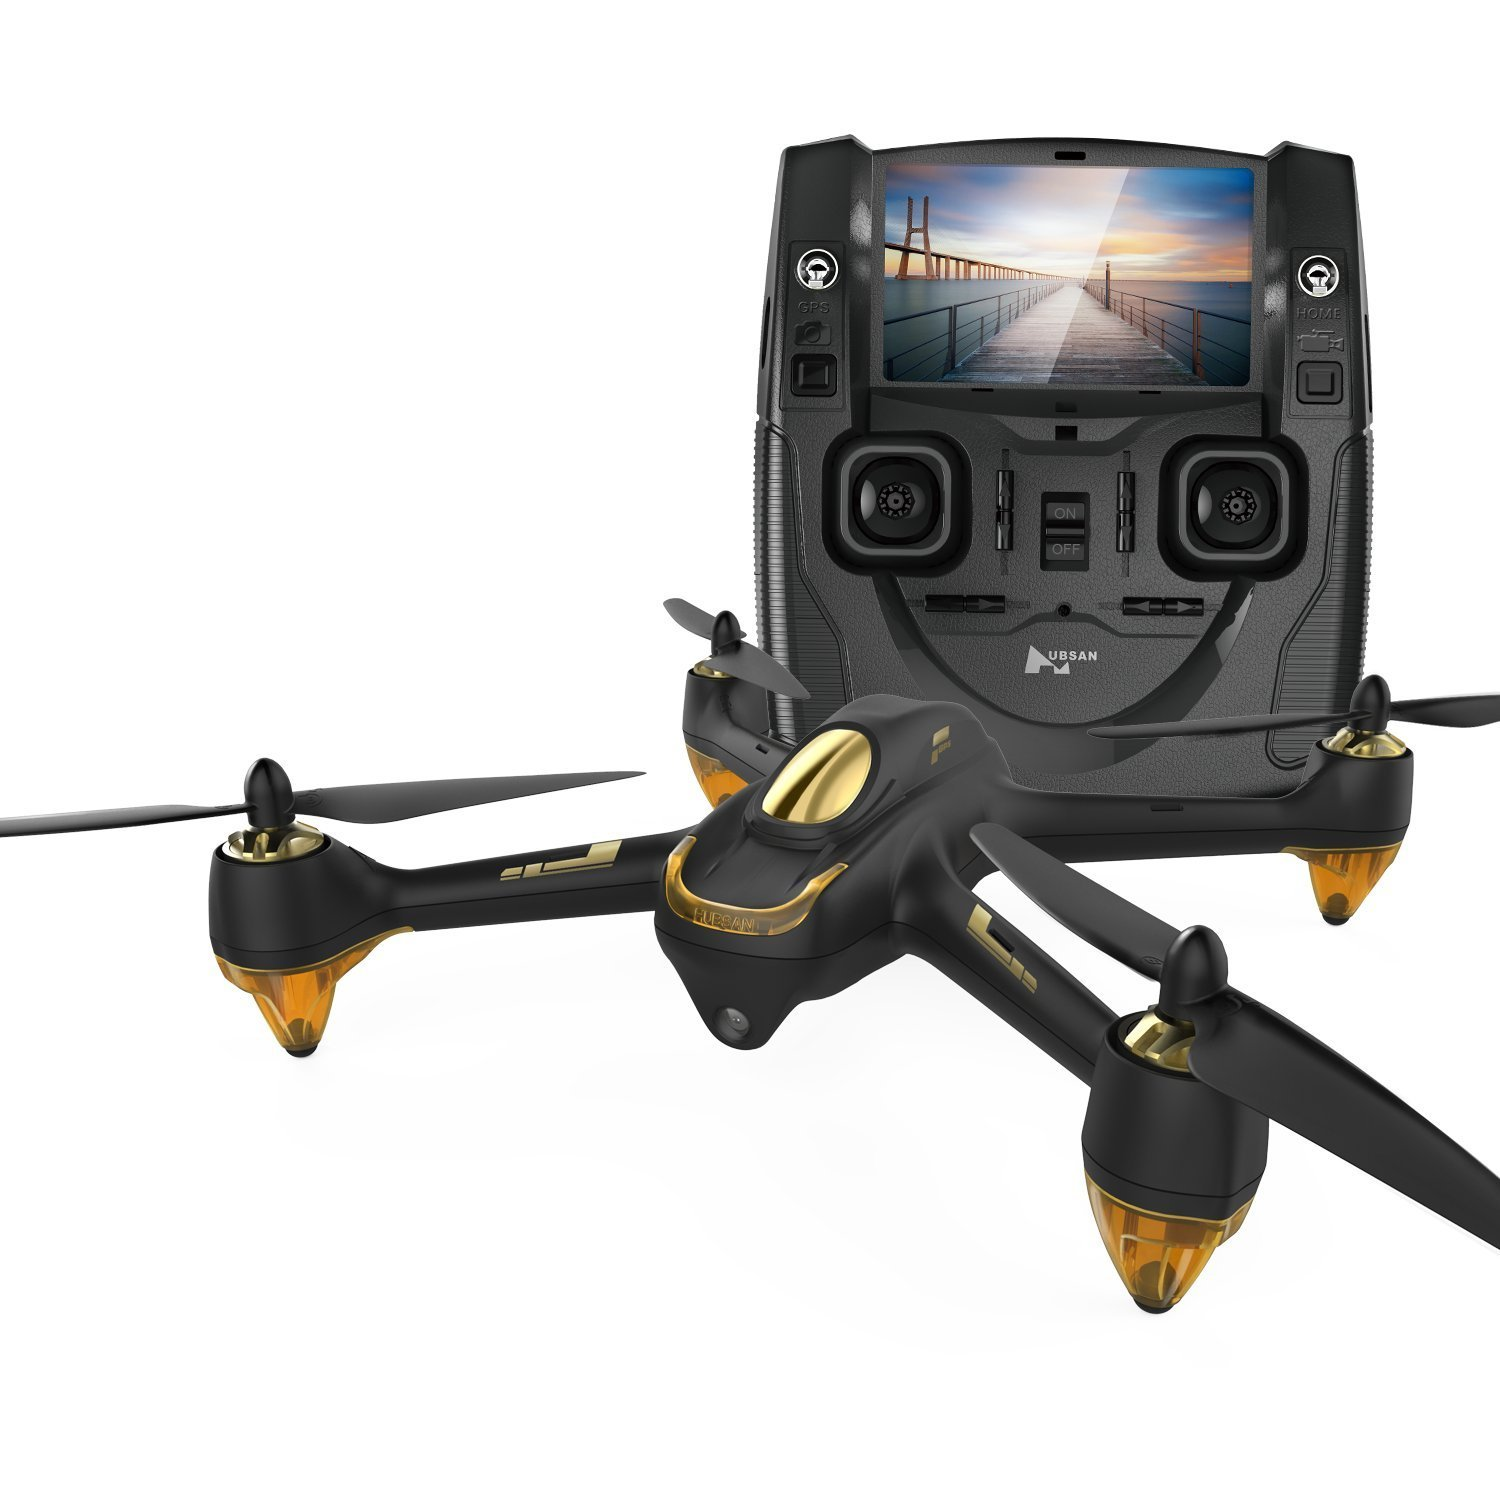 Hubsan H501S X4 5.8G FPV 1080P HD Camera RC Drone Quadcopter With GPS Follow Me CF Mode by